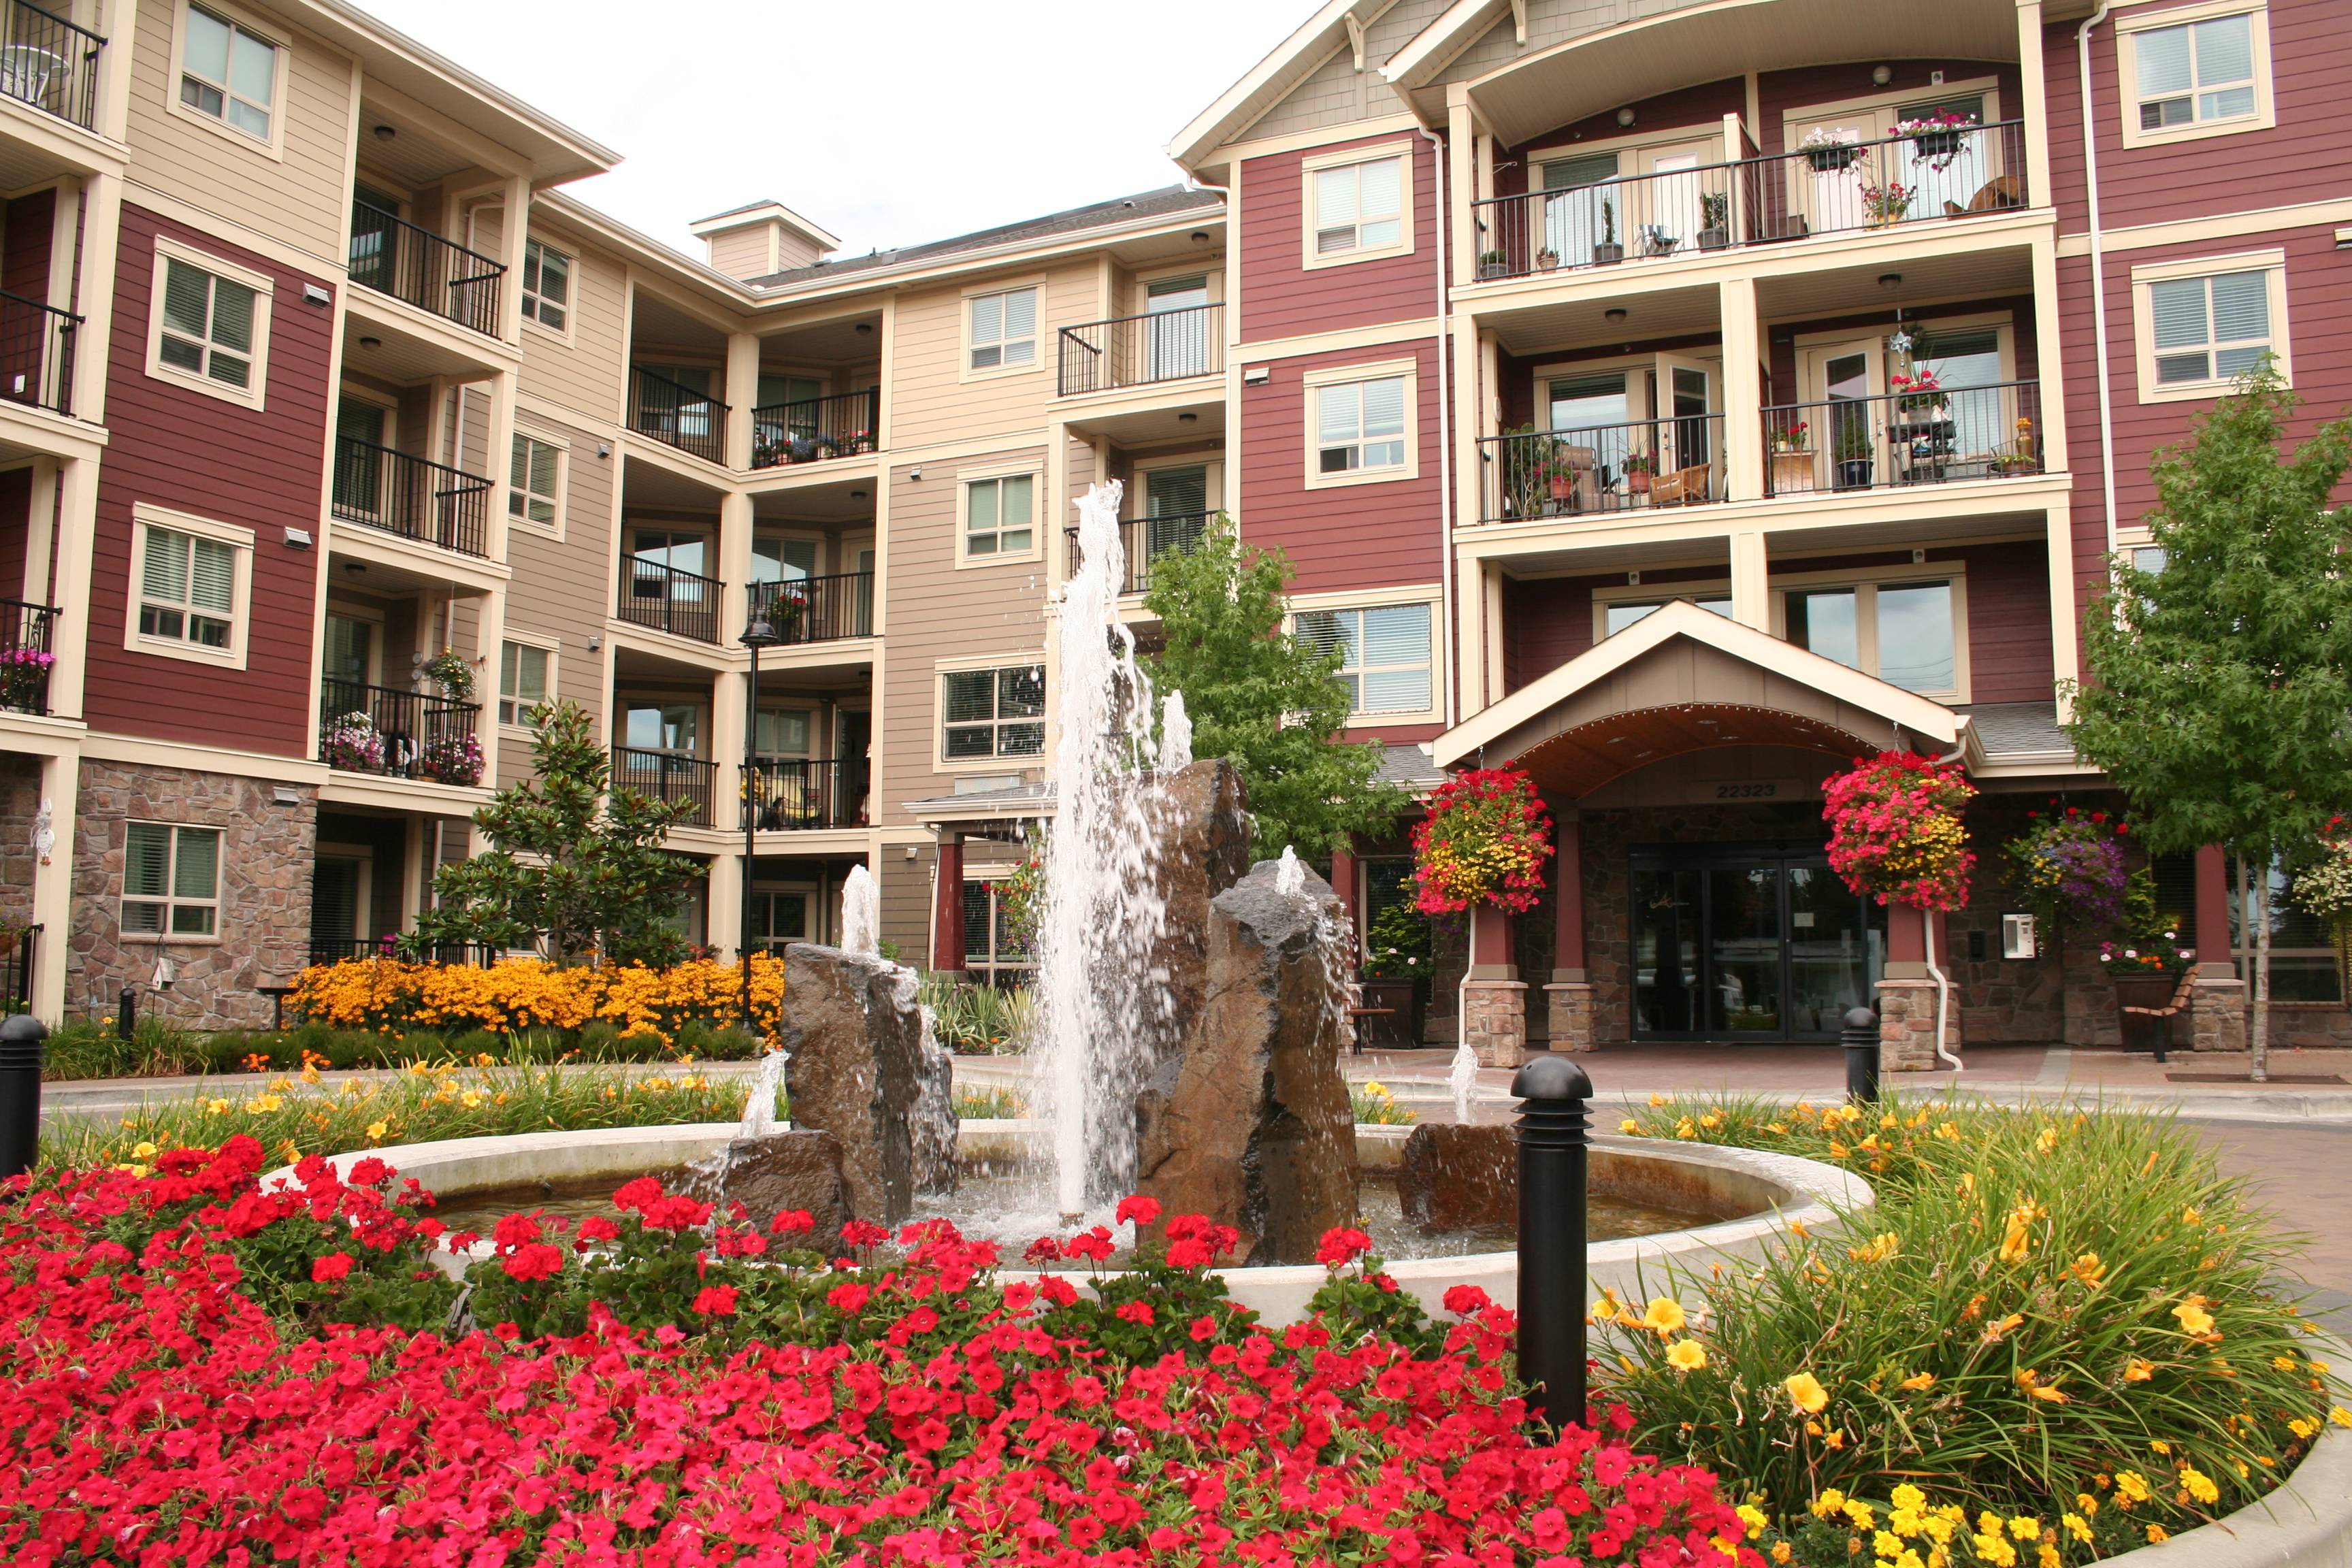 Avalon Gardens Seniors Housing Seniors Living